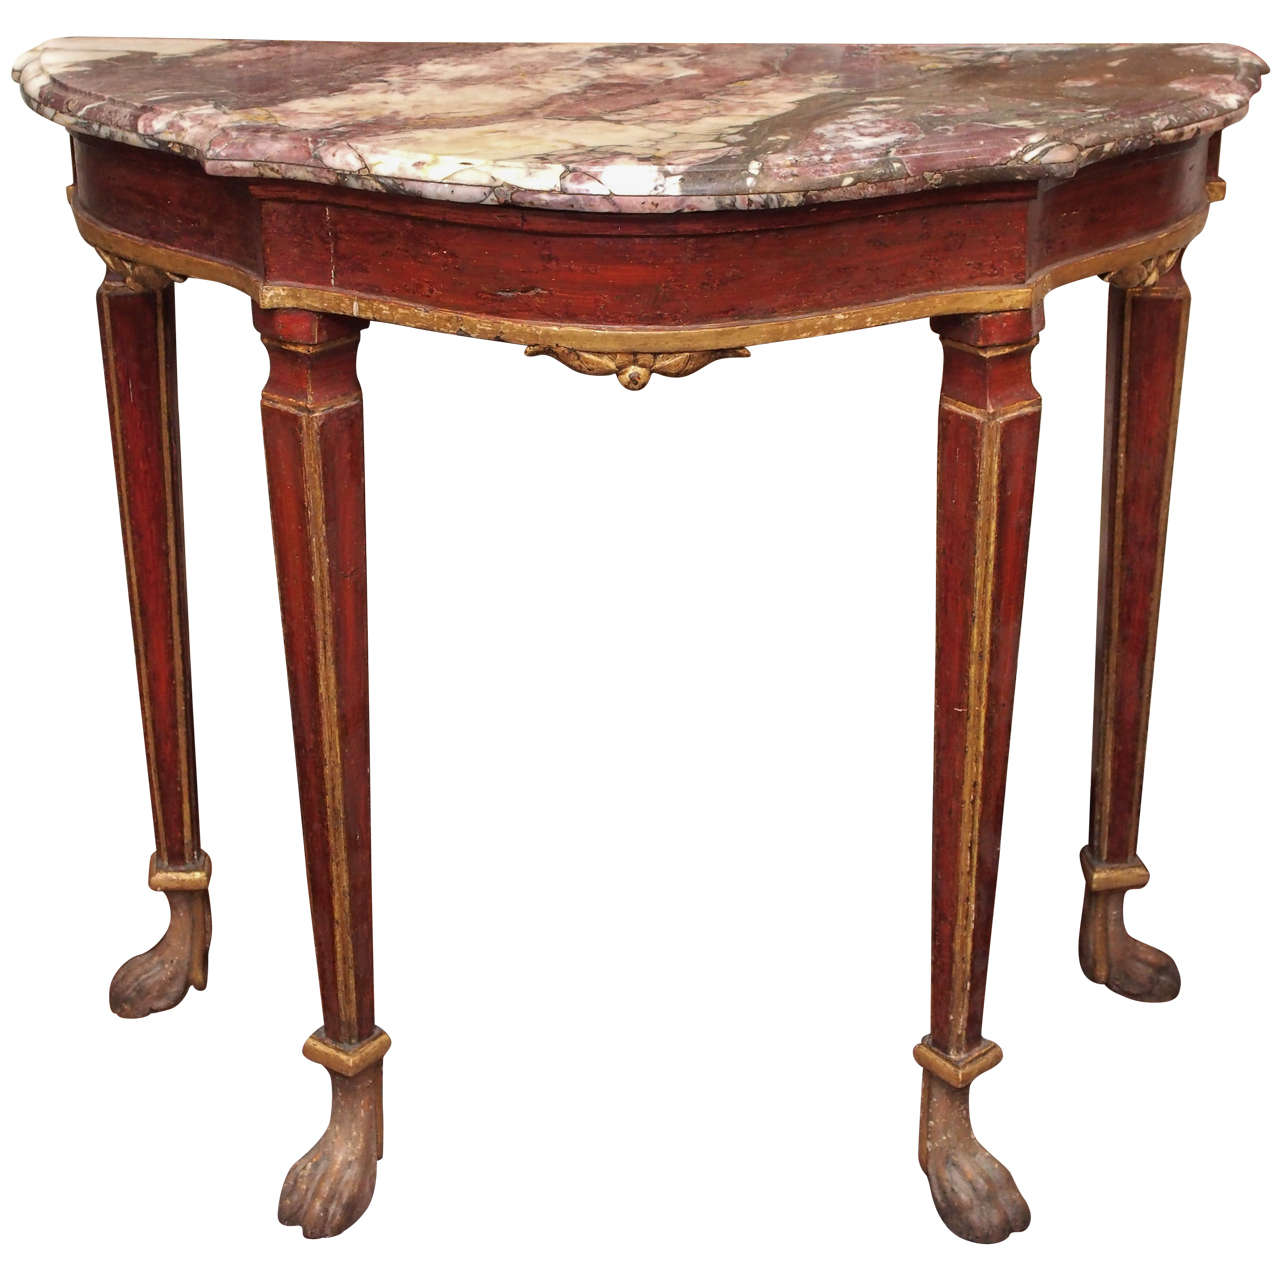 Small venetian painted console table with marble top for sale at small venetian painted console table with marble top 1 geotapseo Gallery